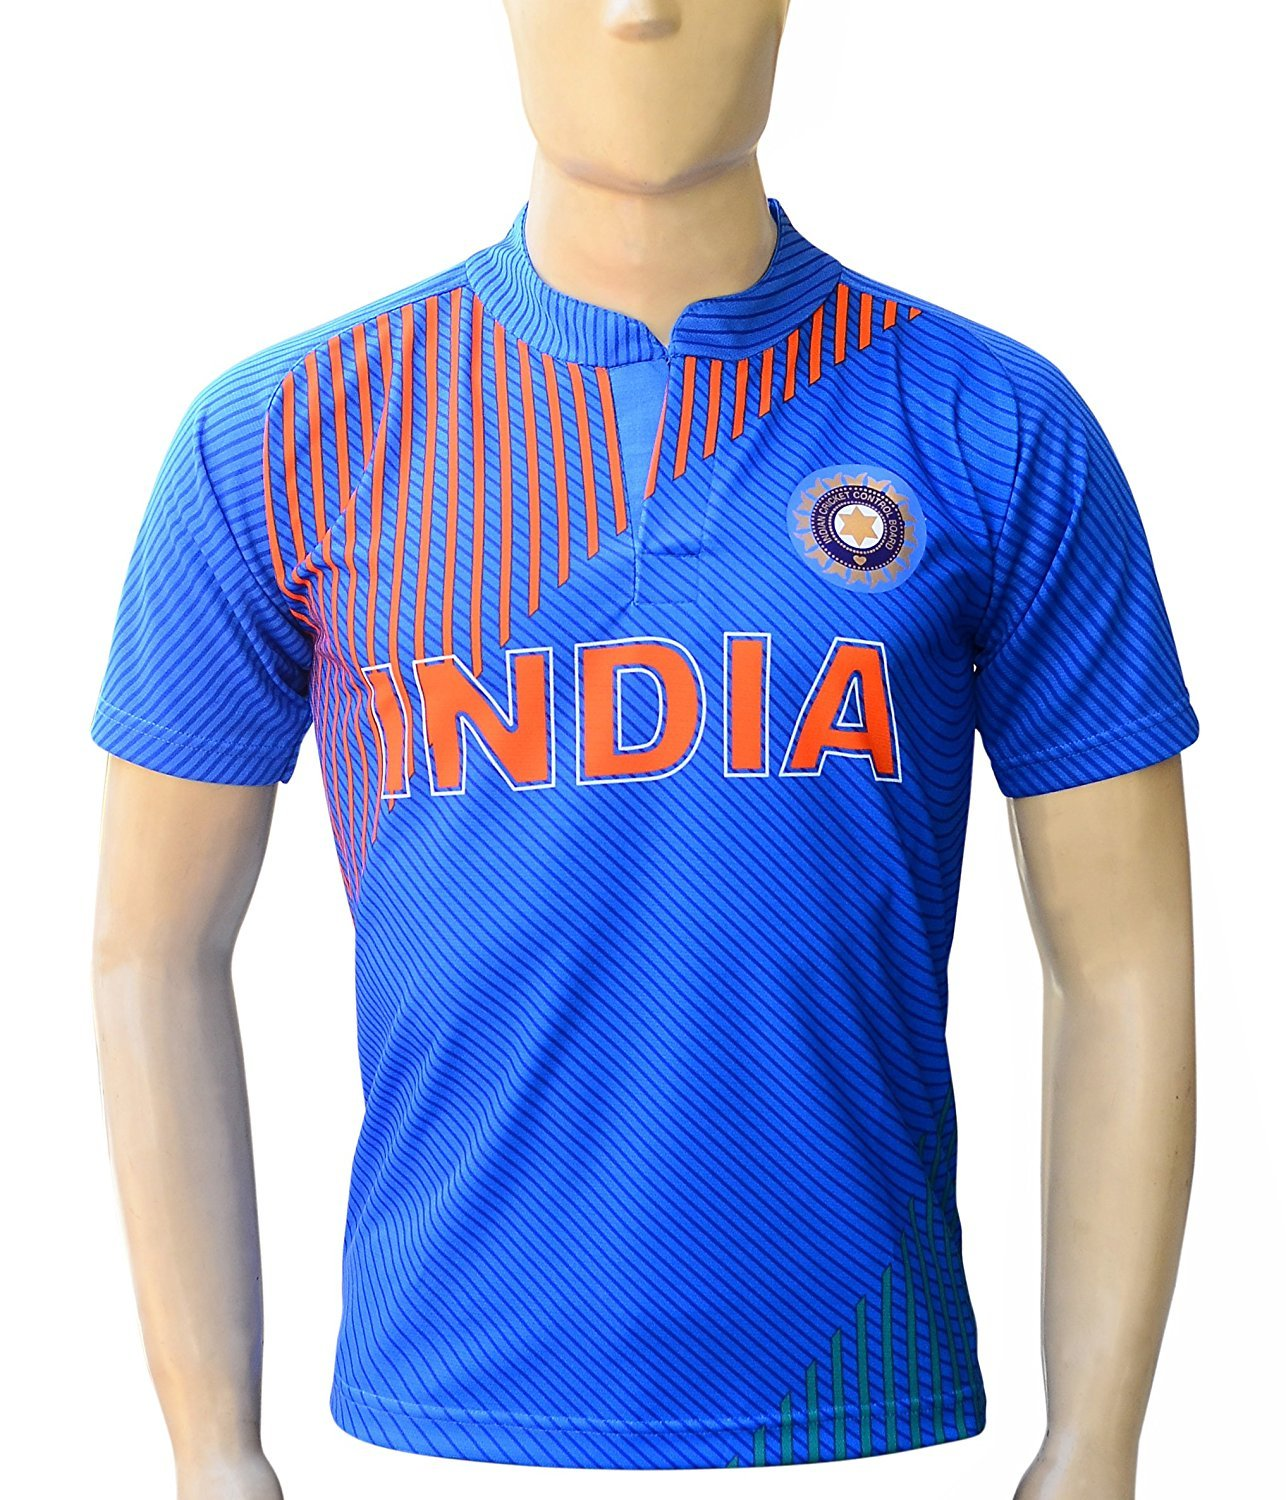 Nike mexico jersey 2017 one pen one page - X3 Team India Odi 2016 Cricket Supporter Jersey Printed Player Name Number